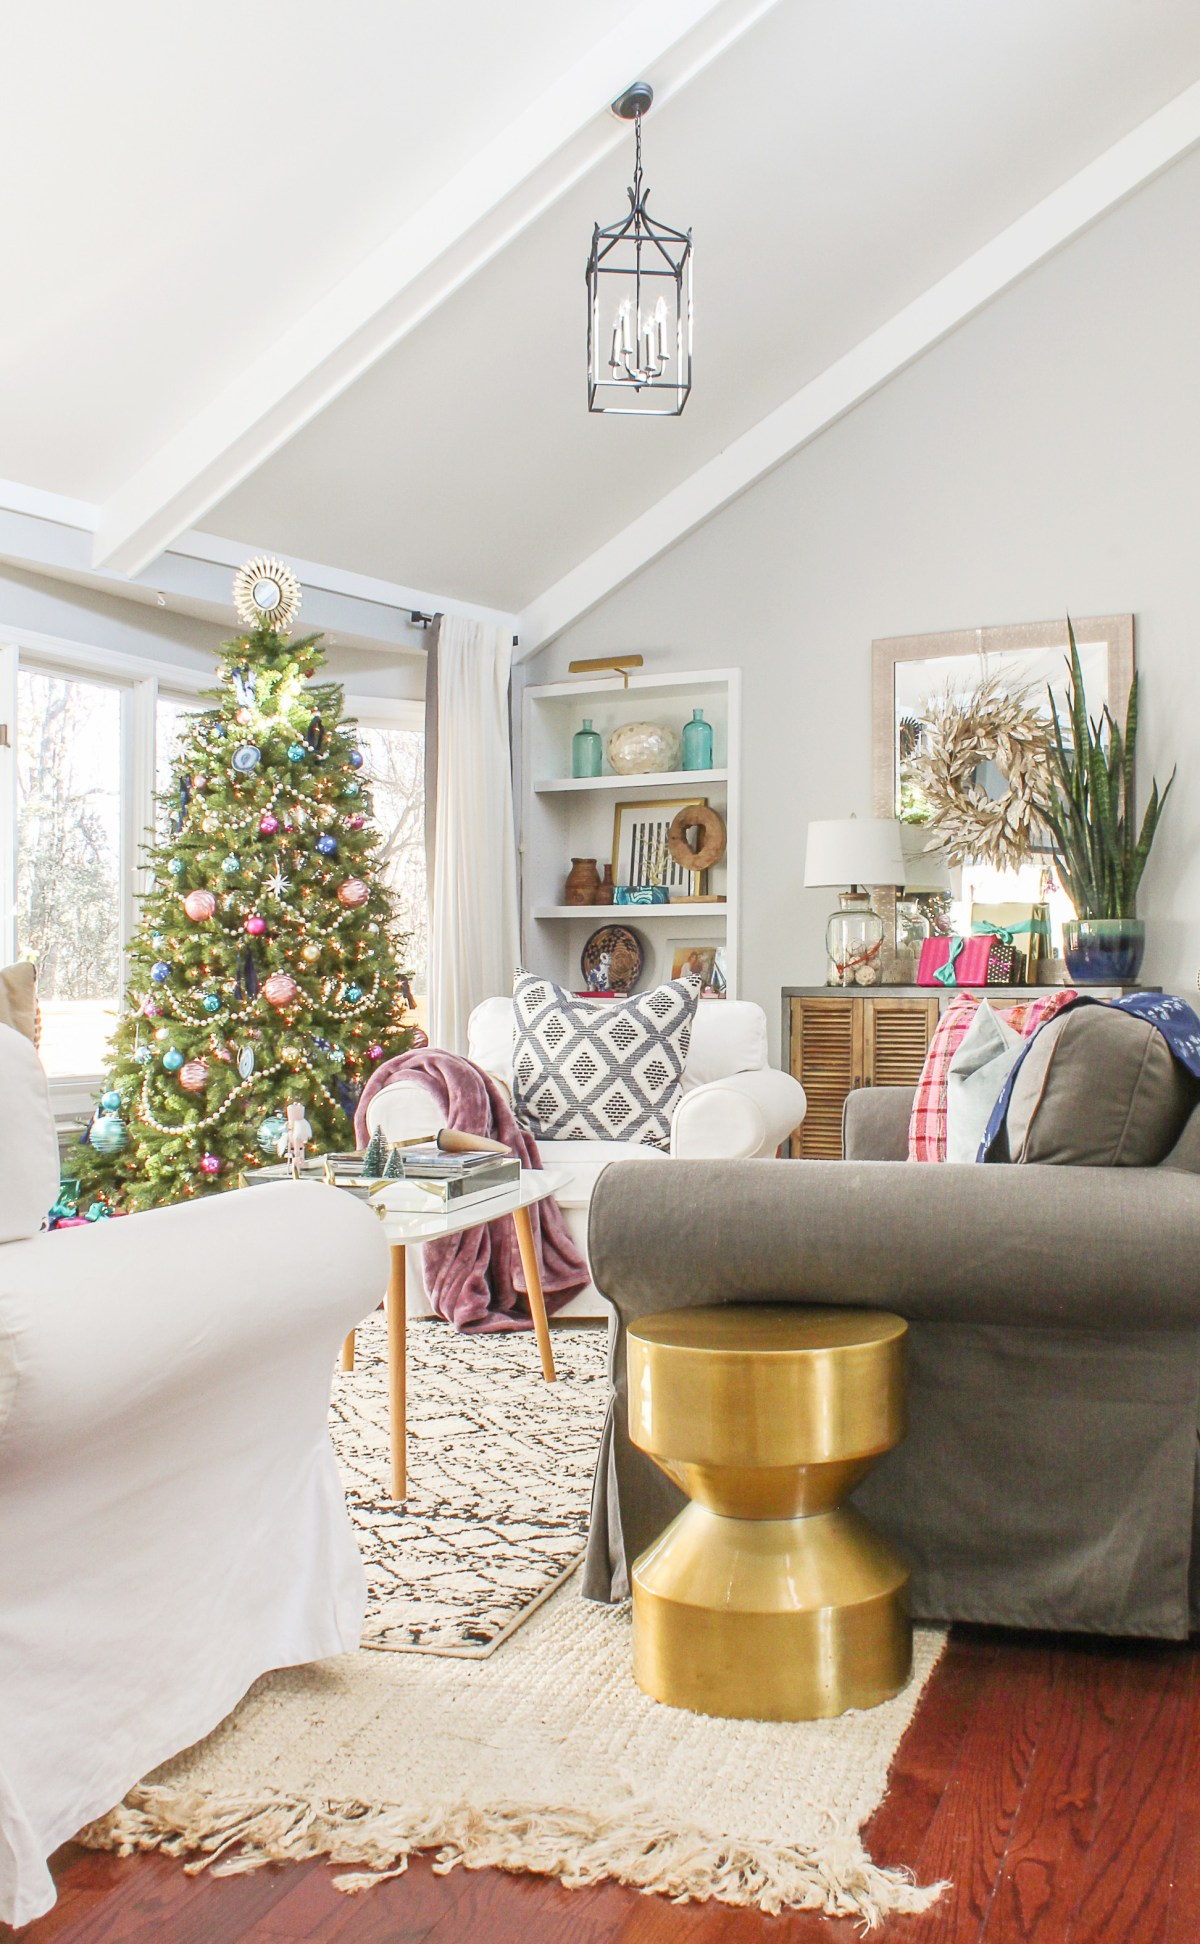 Boho Chic Christmas Home Tour 2017 Part 1 - Modern Christmas Decor